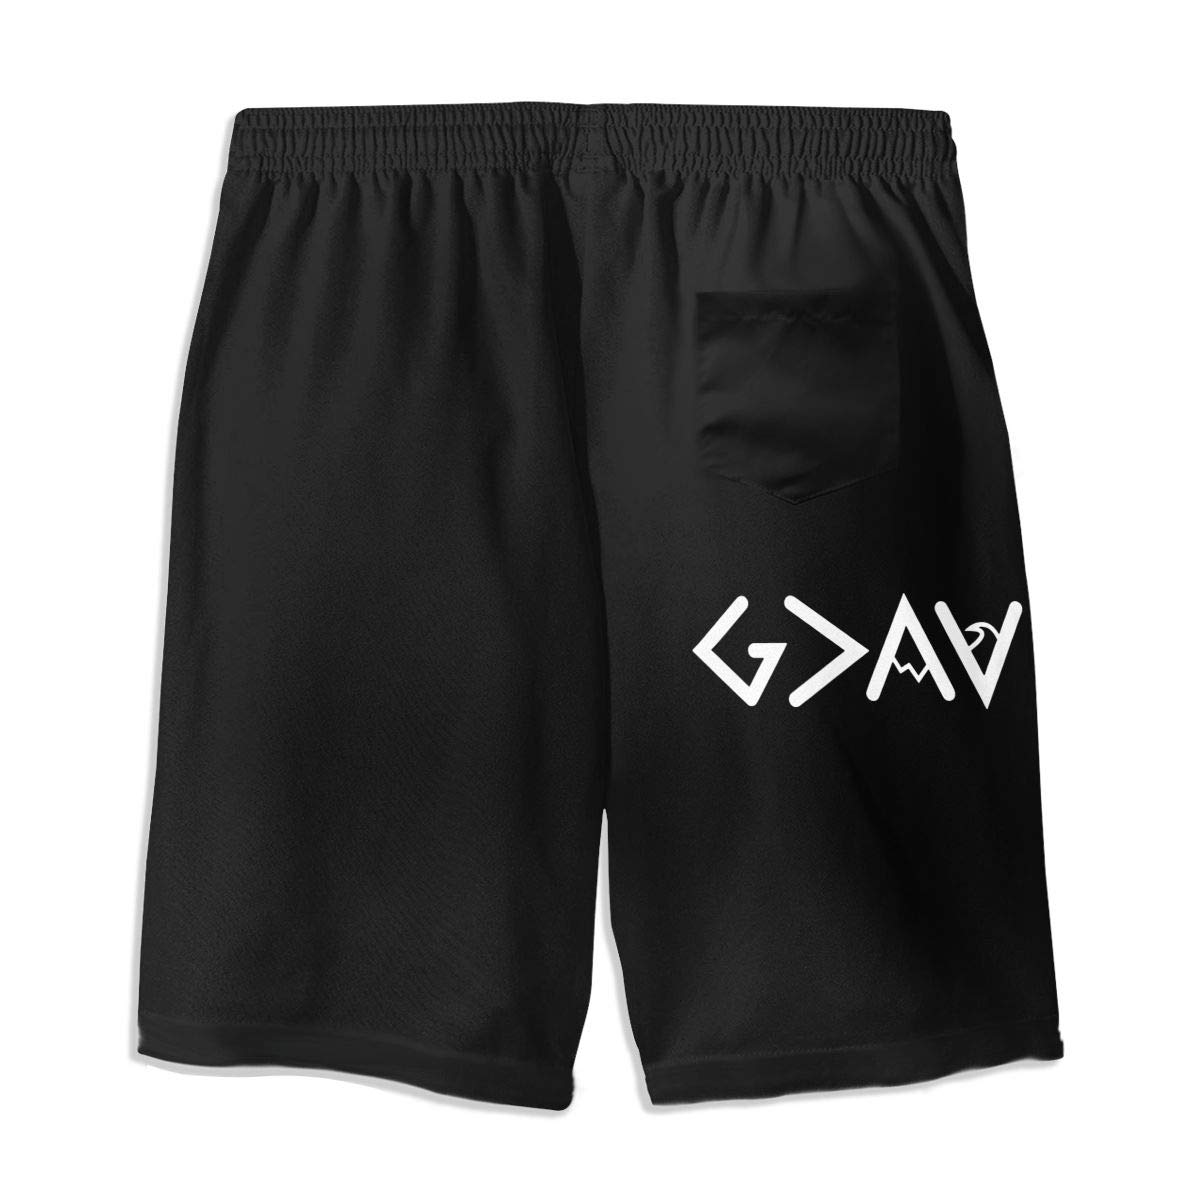 OPQRSTQ-O God is Greater Than The Highs and Lows Teen Mens Gym Casual Swimming Shorts Beach Board Shorts